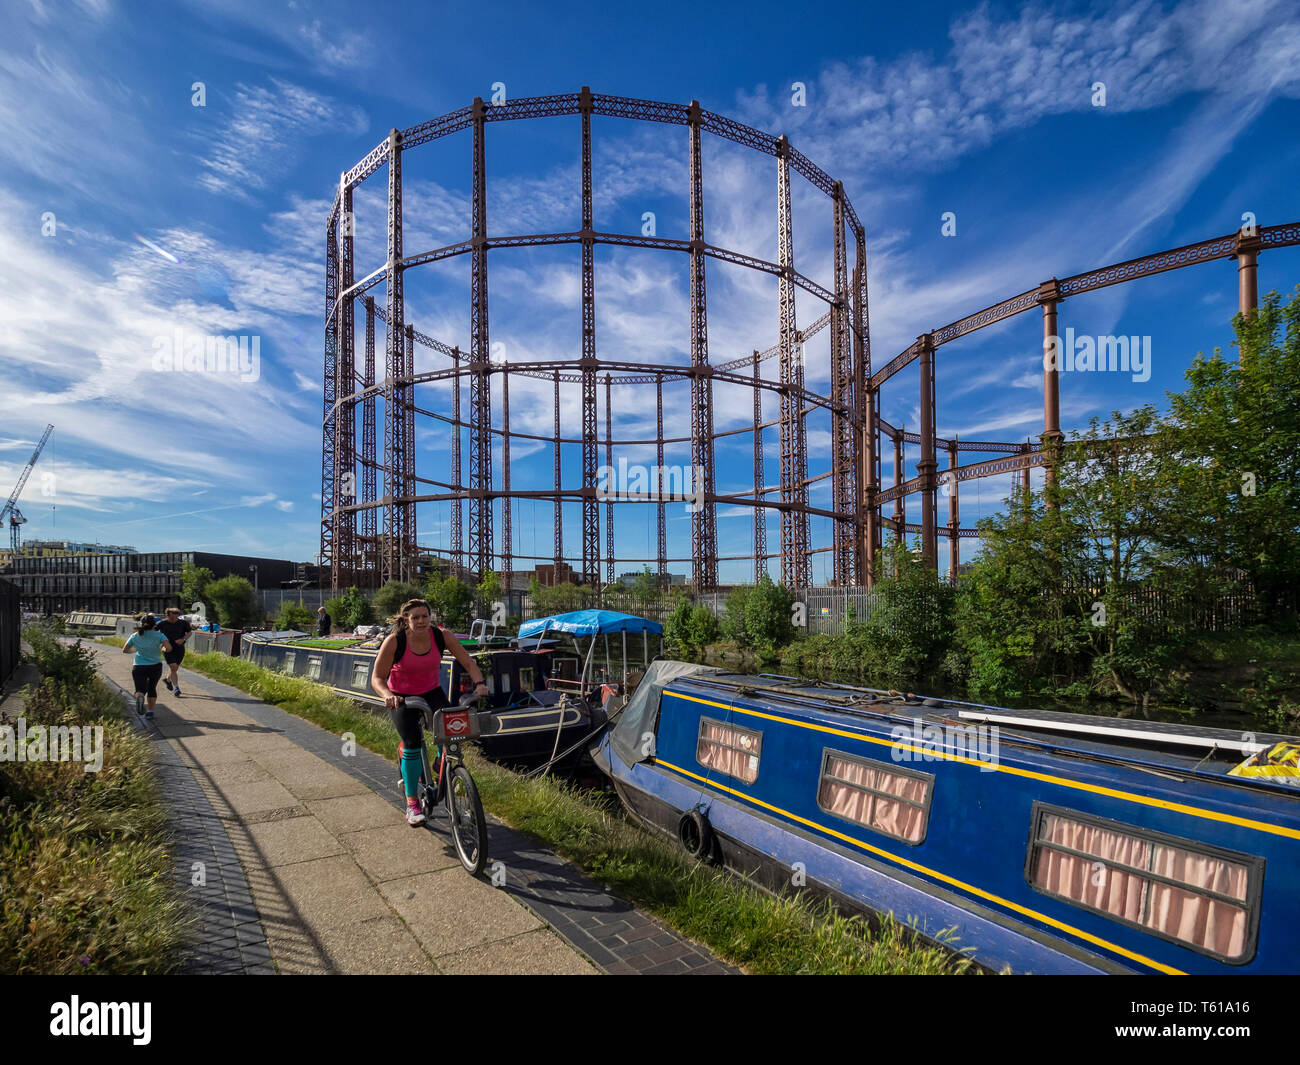 BETHNAL GREEN, LONDON:  View along the Regents Canal towpath toward the dis-used gas holders - Stock Image